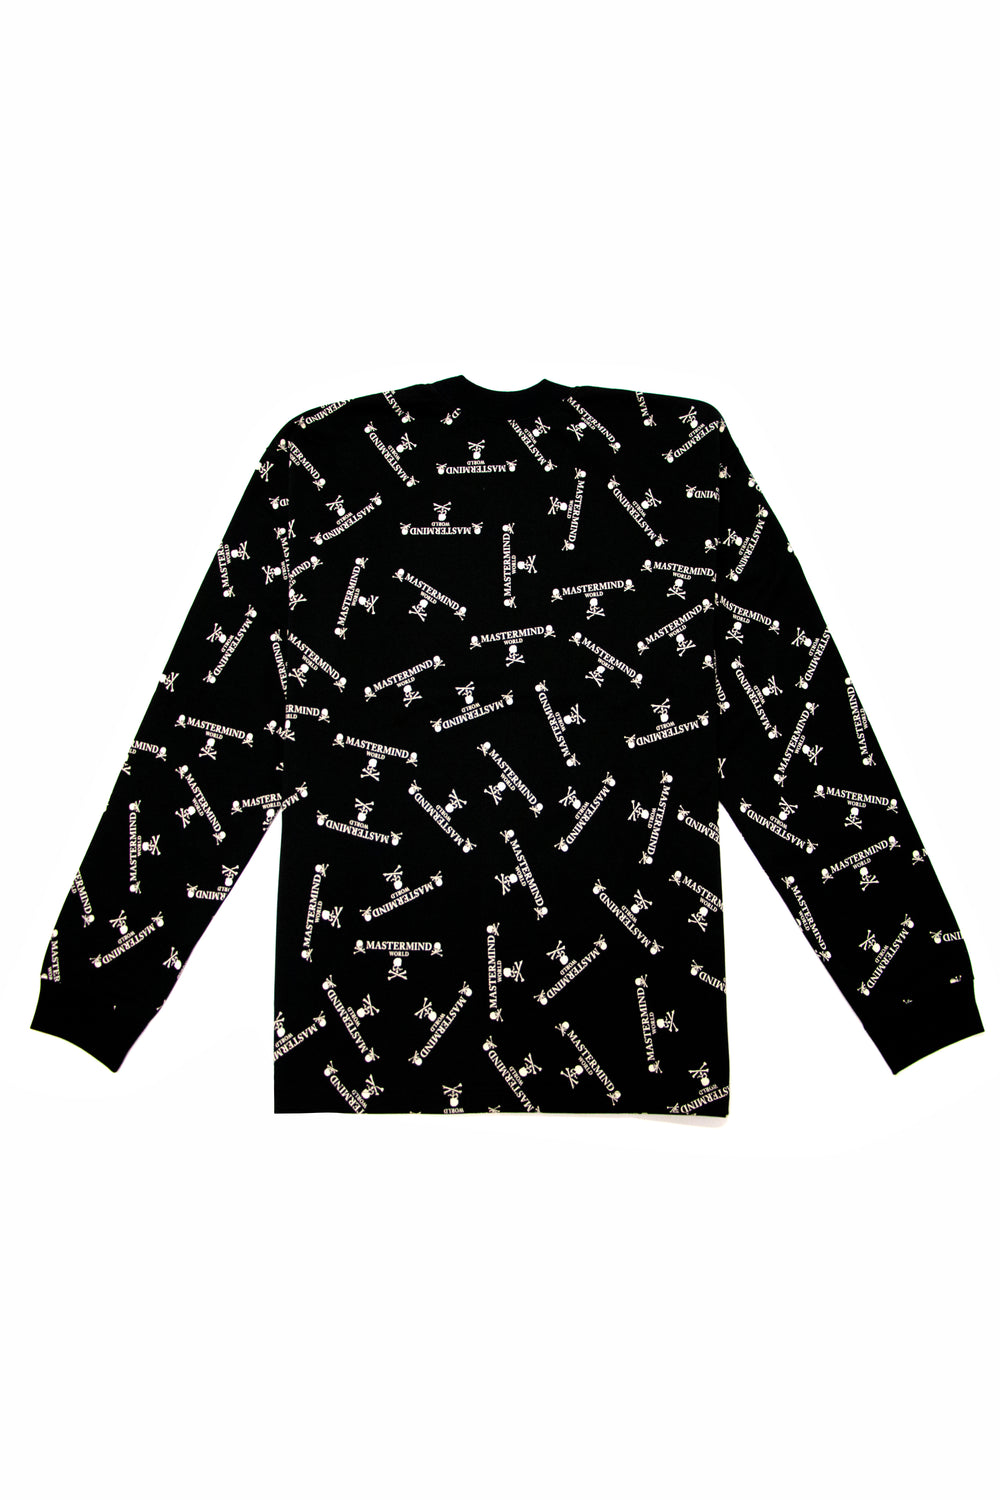 Mastermind World All Over Logo Crewneck In Black